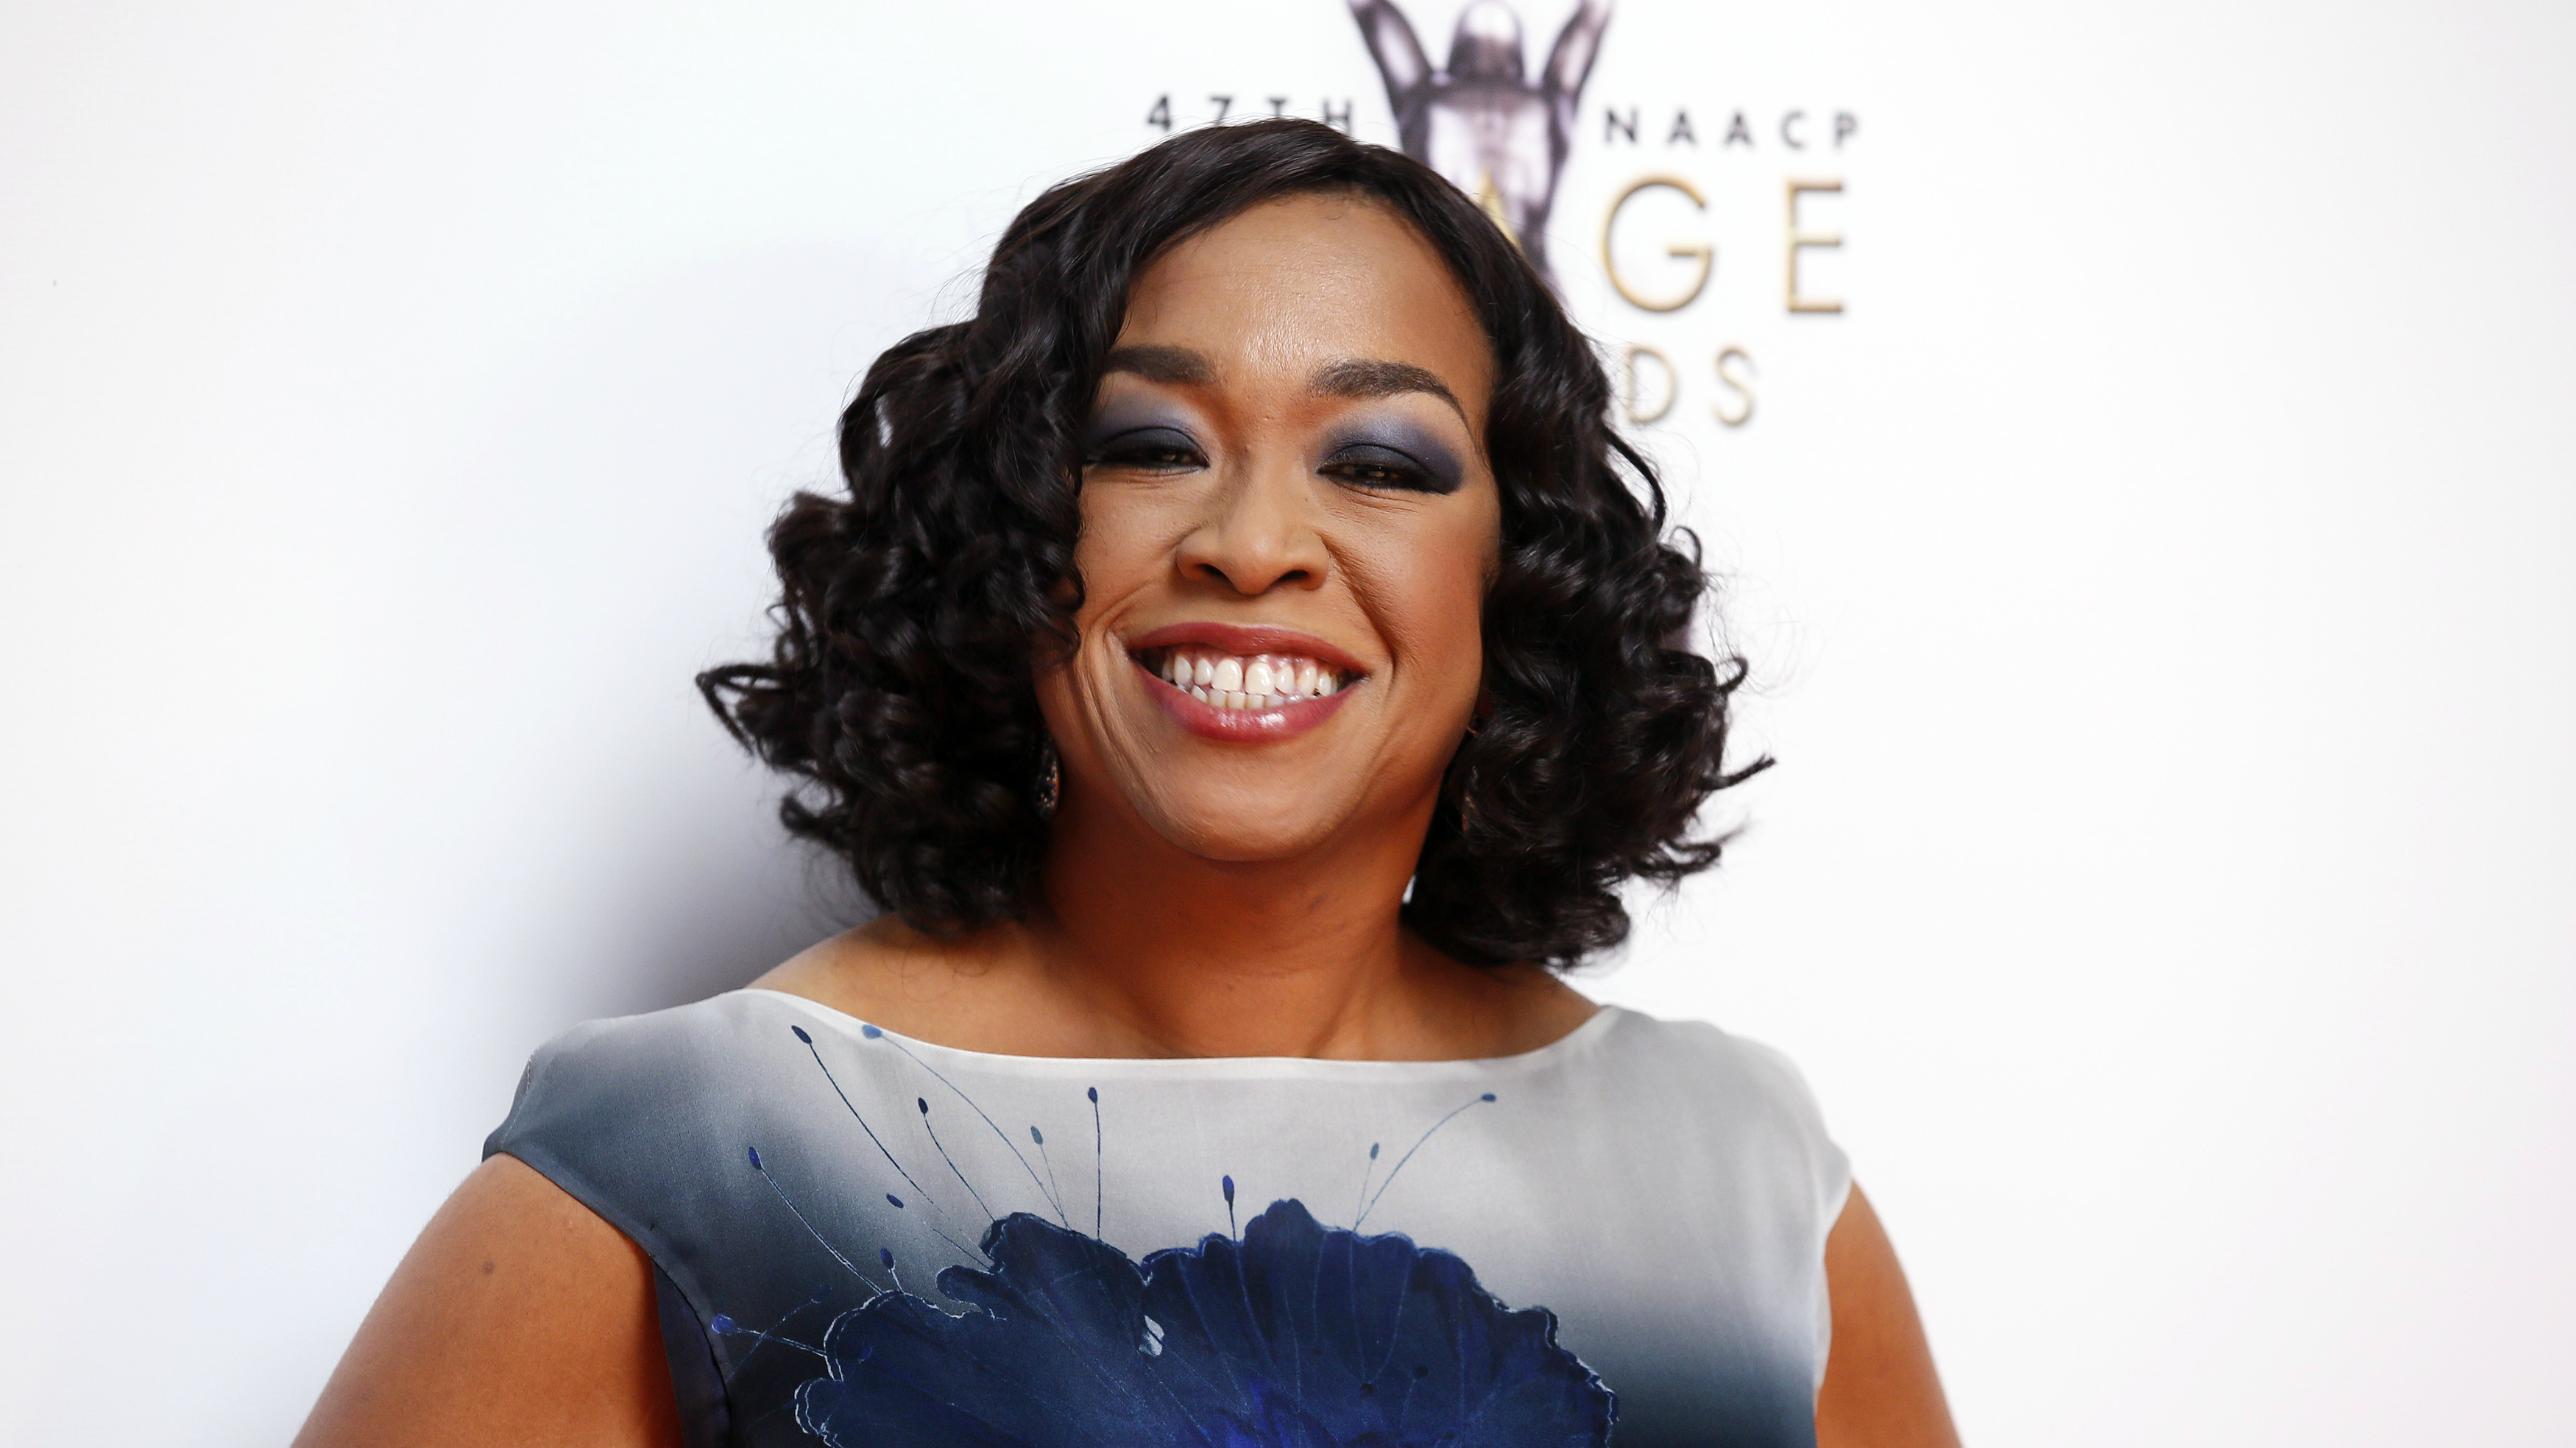 The reason Shonda Rhimes wants everyone to know how much she makes